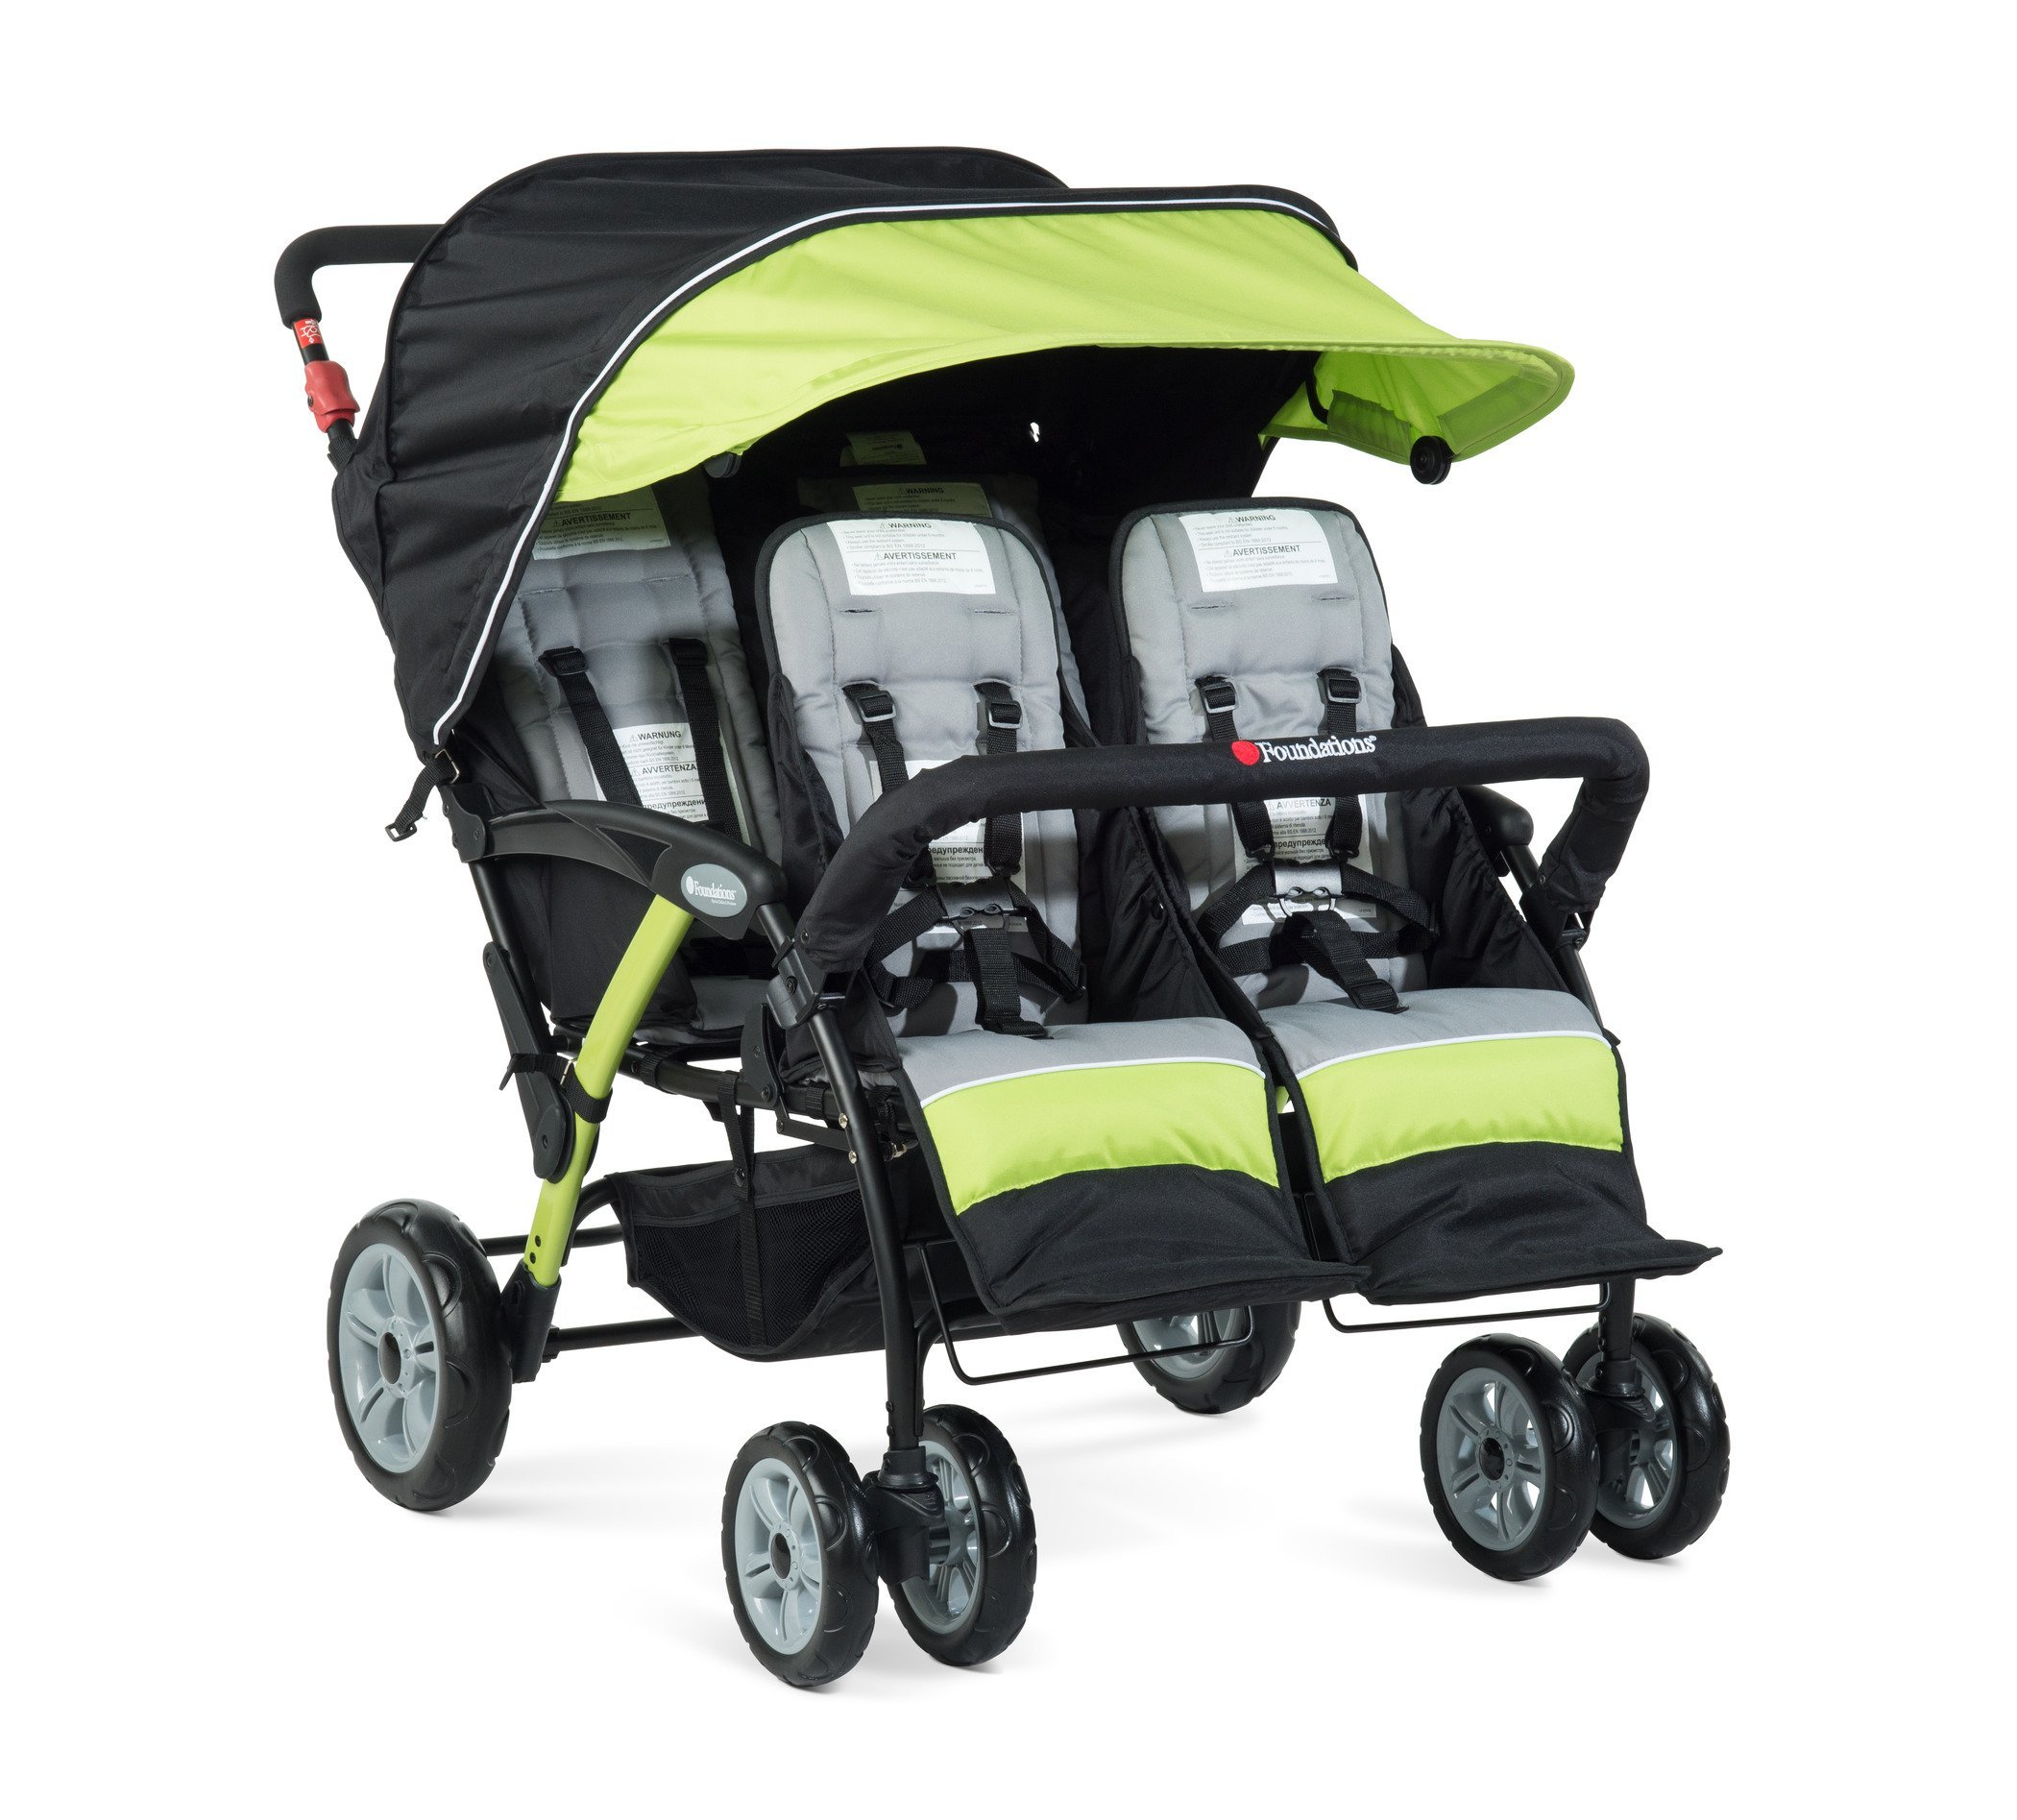 Childcraft The Quad Sport 4 Passenger Stroller, Lime by Child Craft (Image #1)